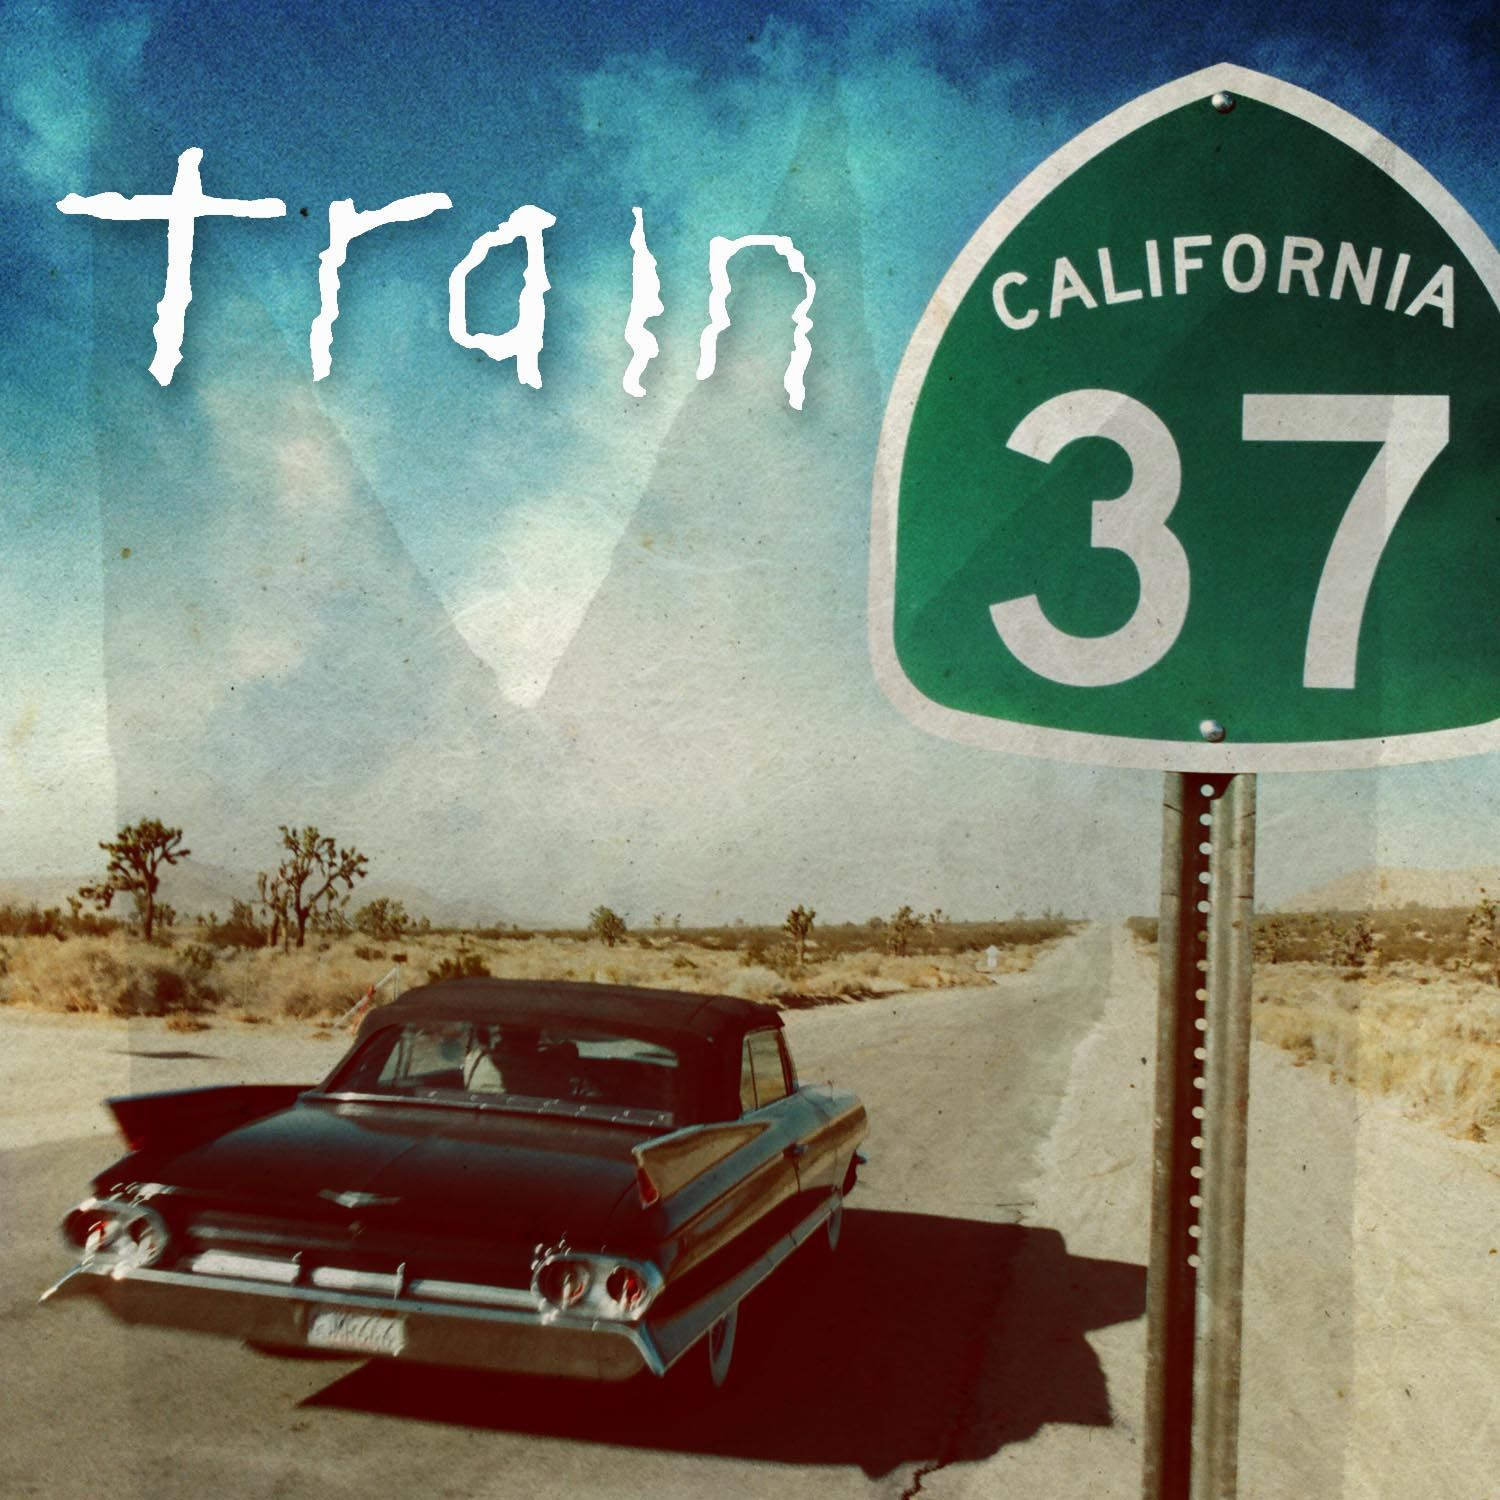 Train - California 37 album cover